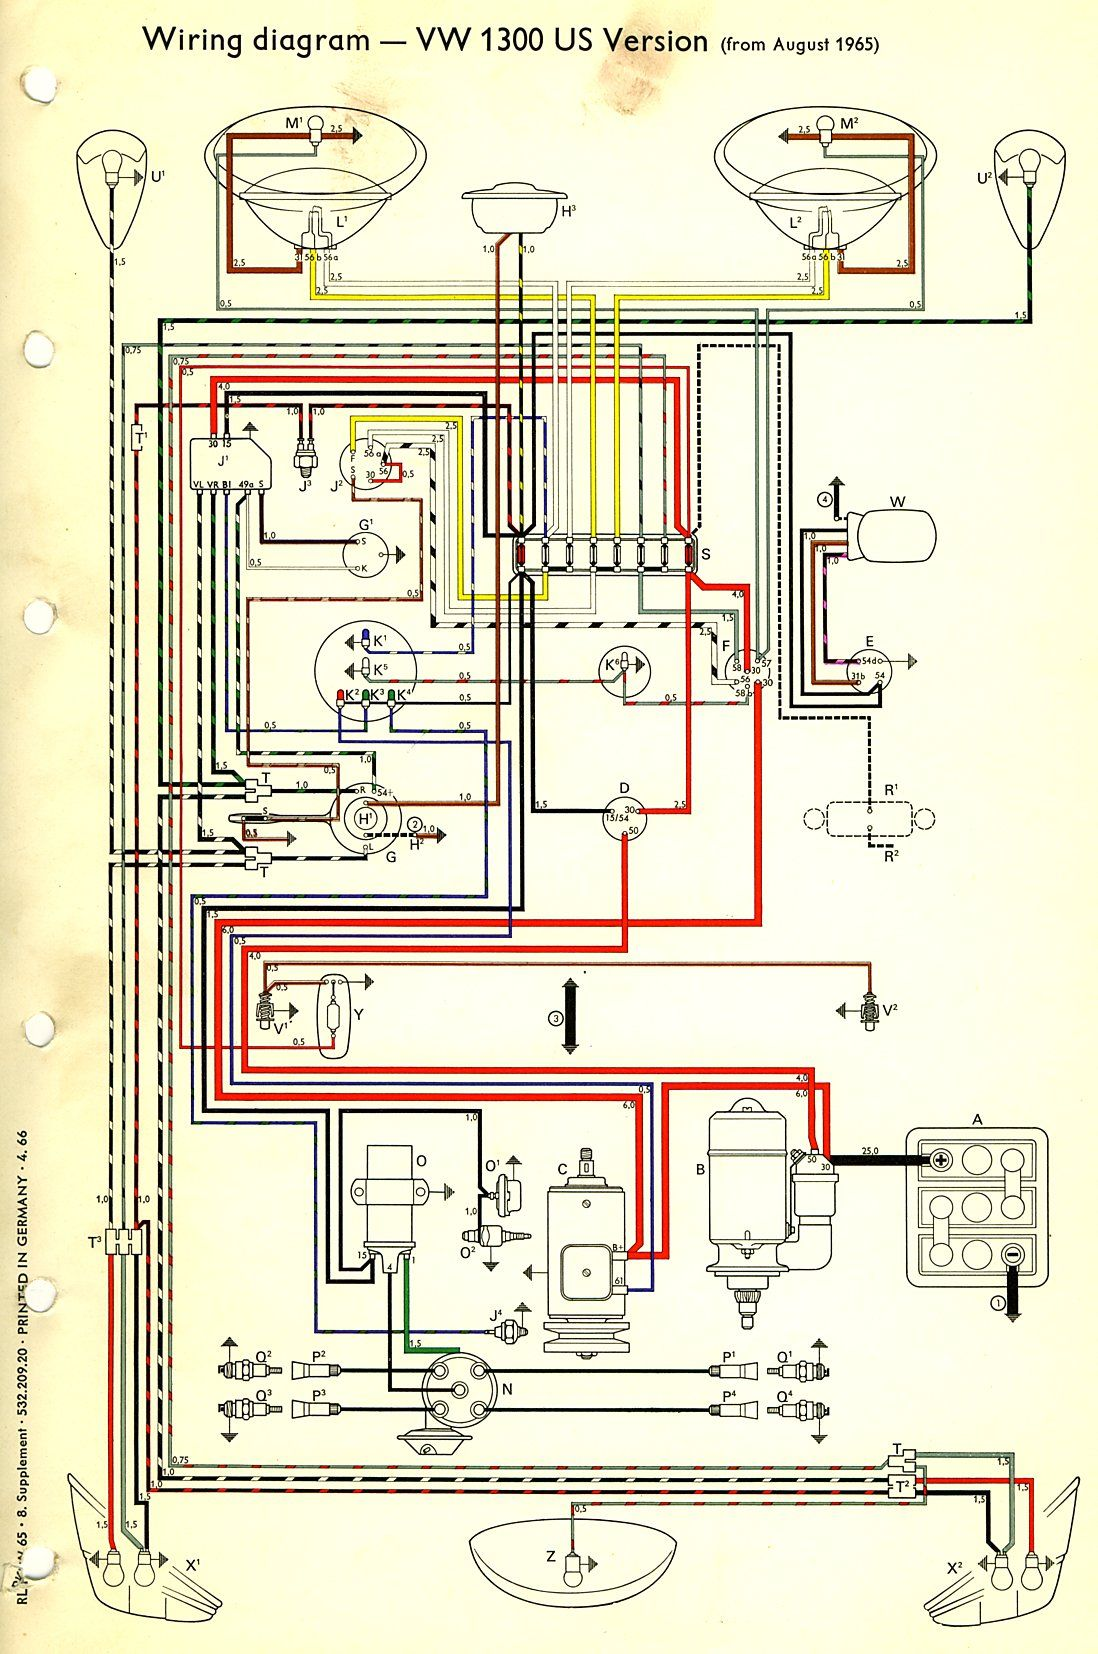 dune buggy wiring schematic - Google Search Dune Buggies, Beetle, Diagram,  Type 1